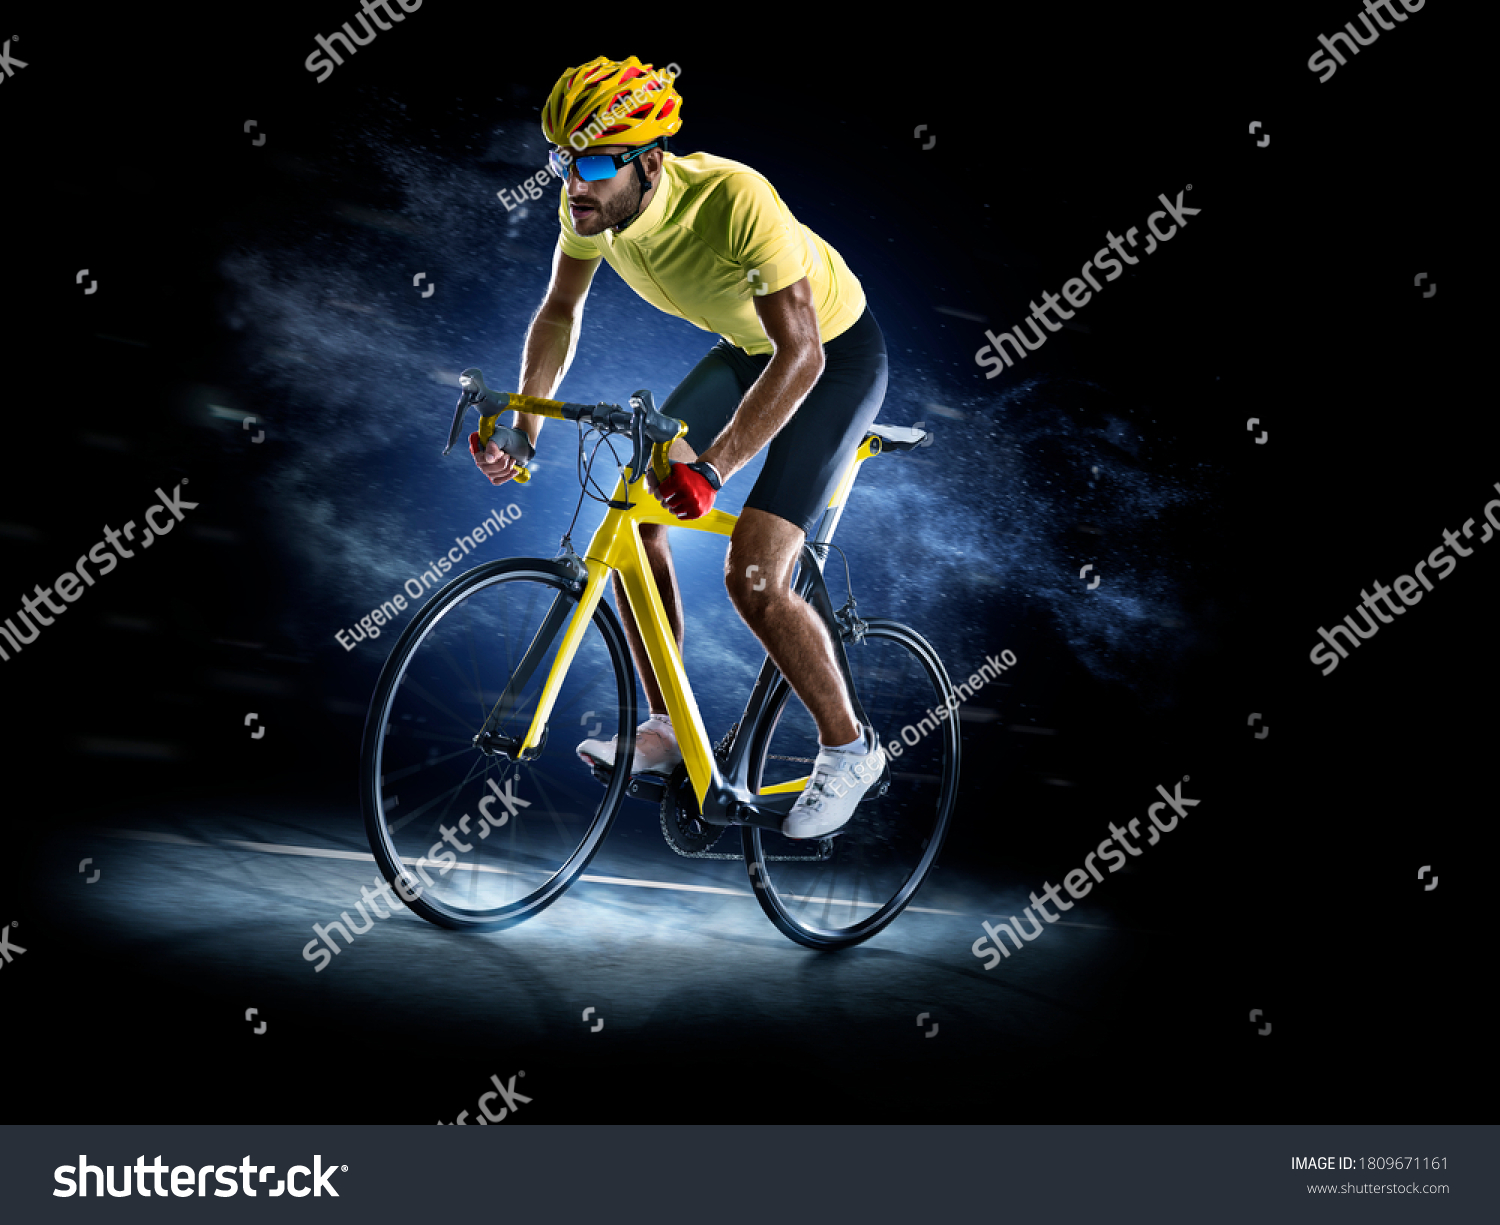 Professional road bicycle racer in action isoated on the black background #1809671161